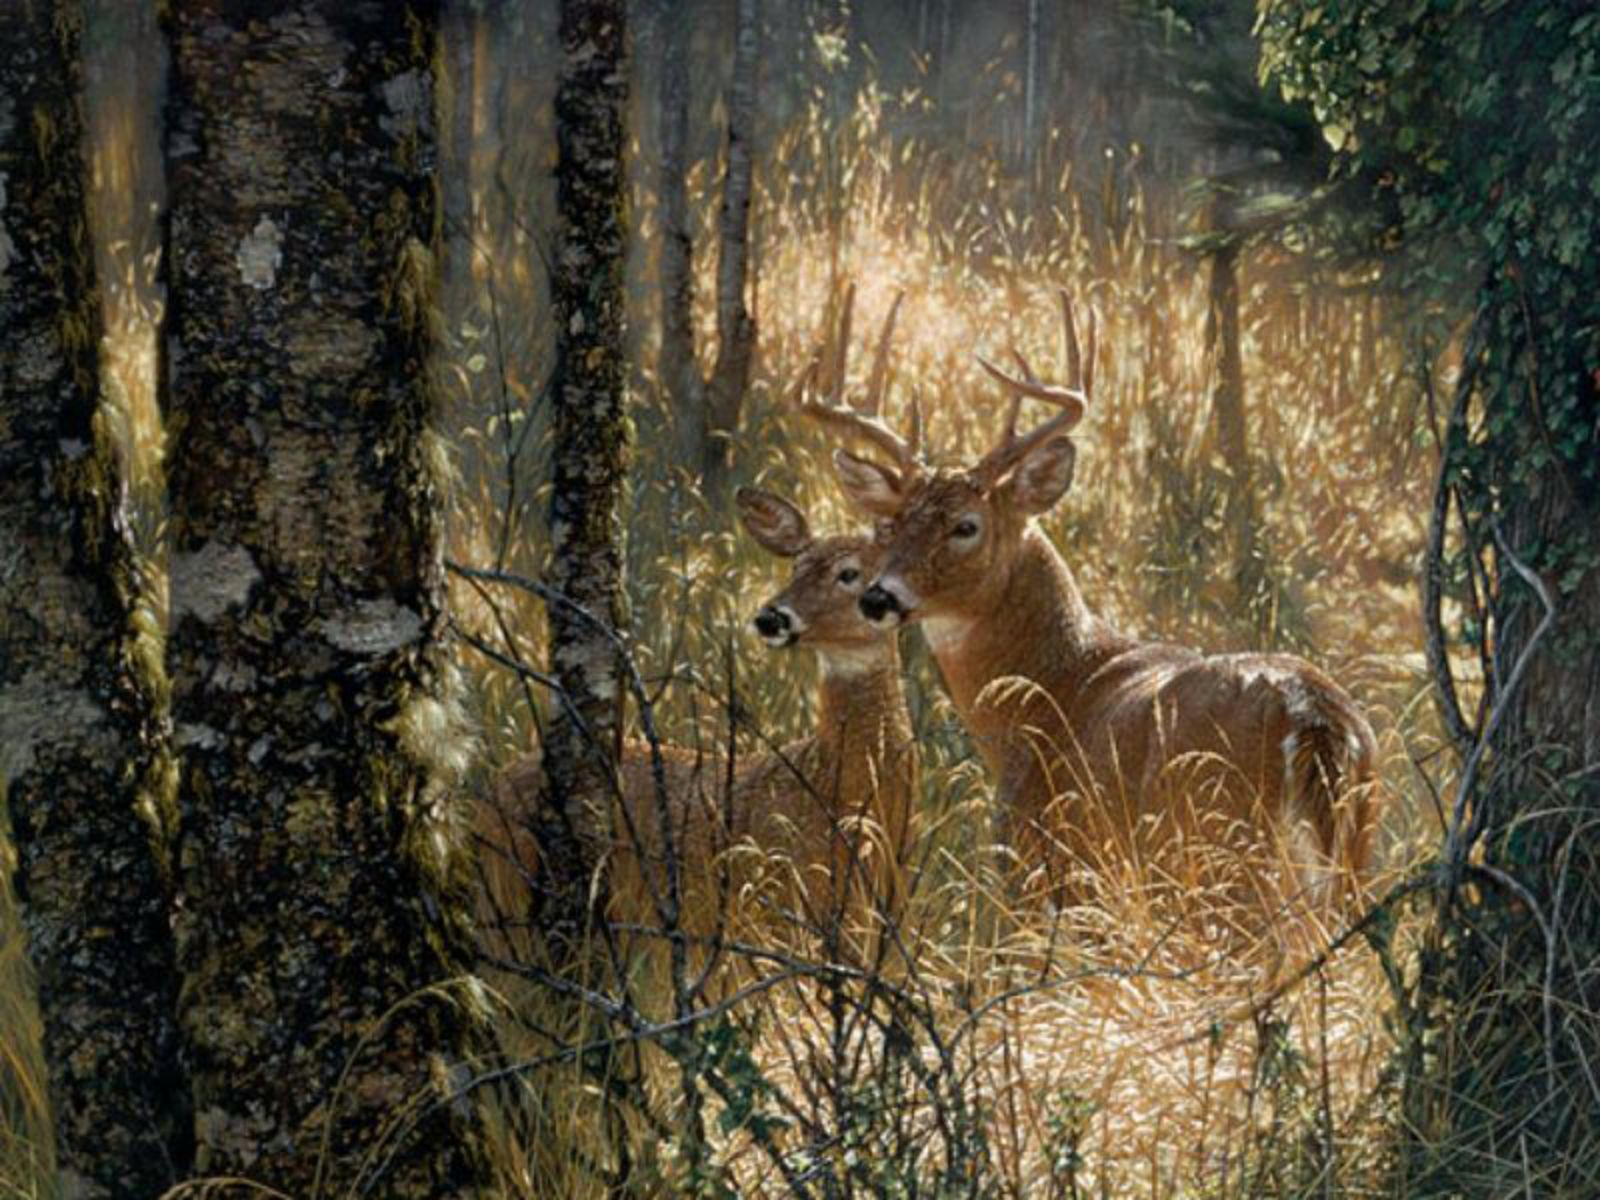 High Definition deer wallpapers,High Definition deer wallpaper,High